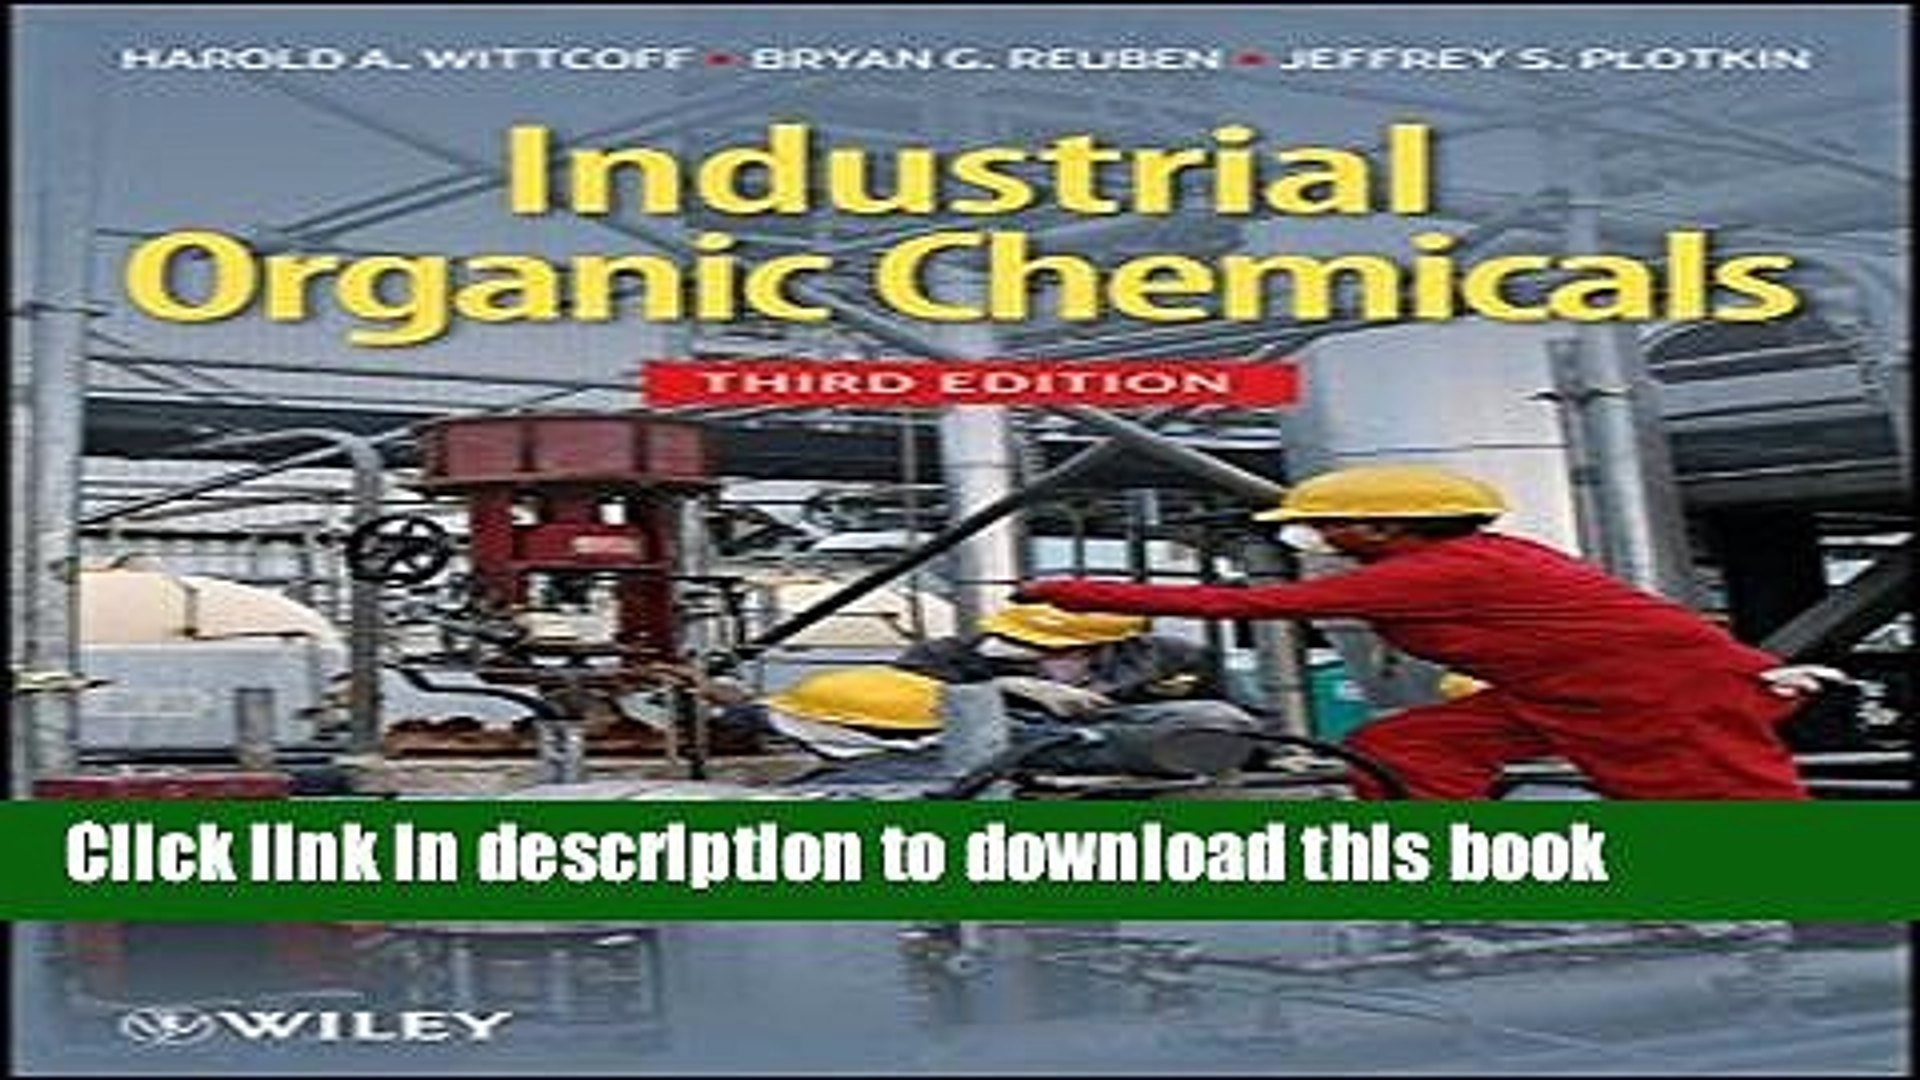 Industrial organic chemicals